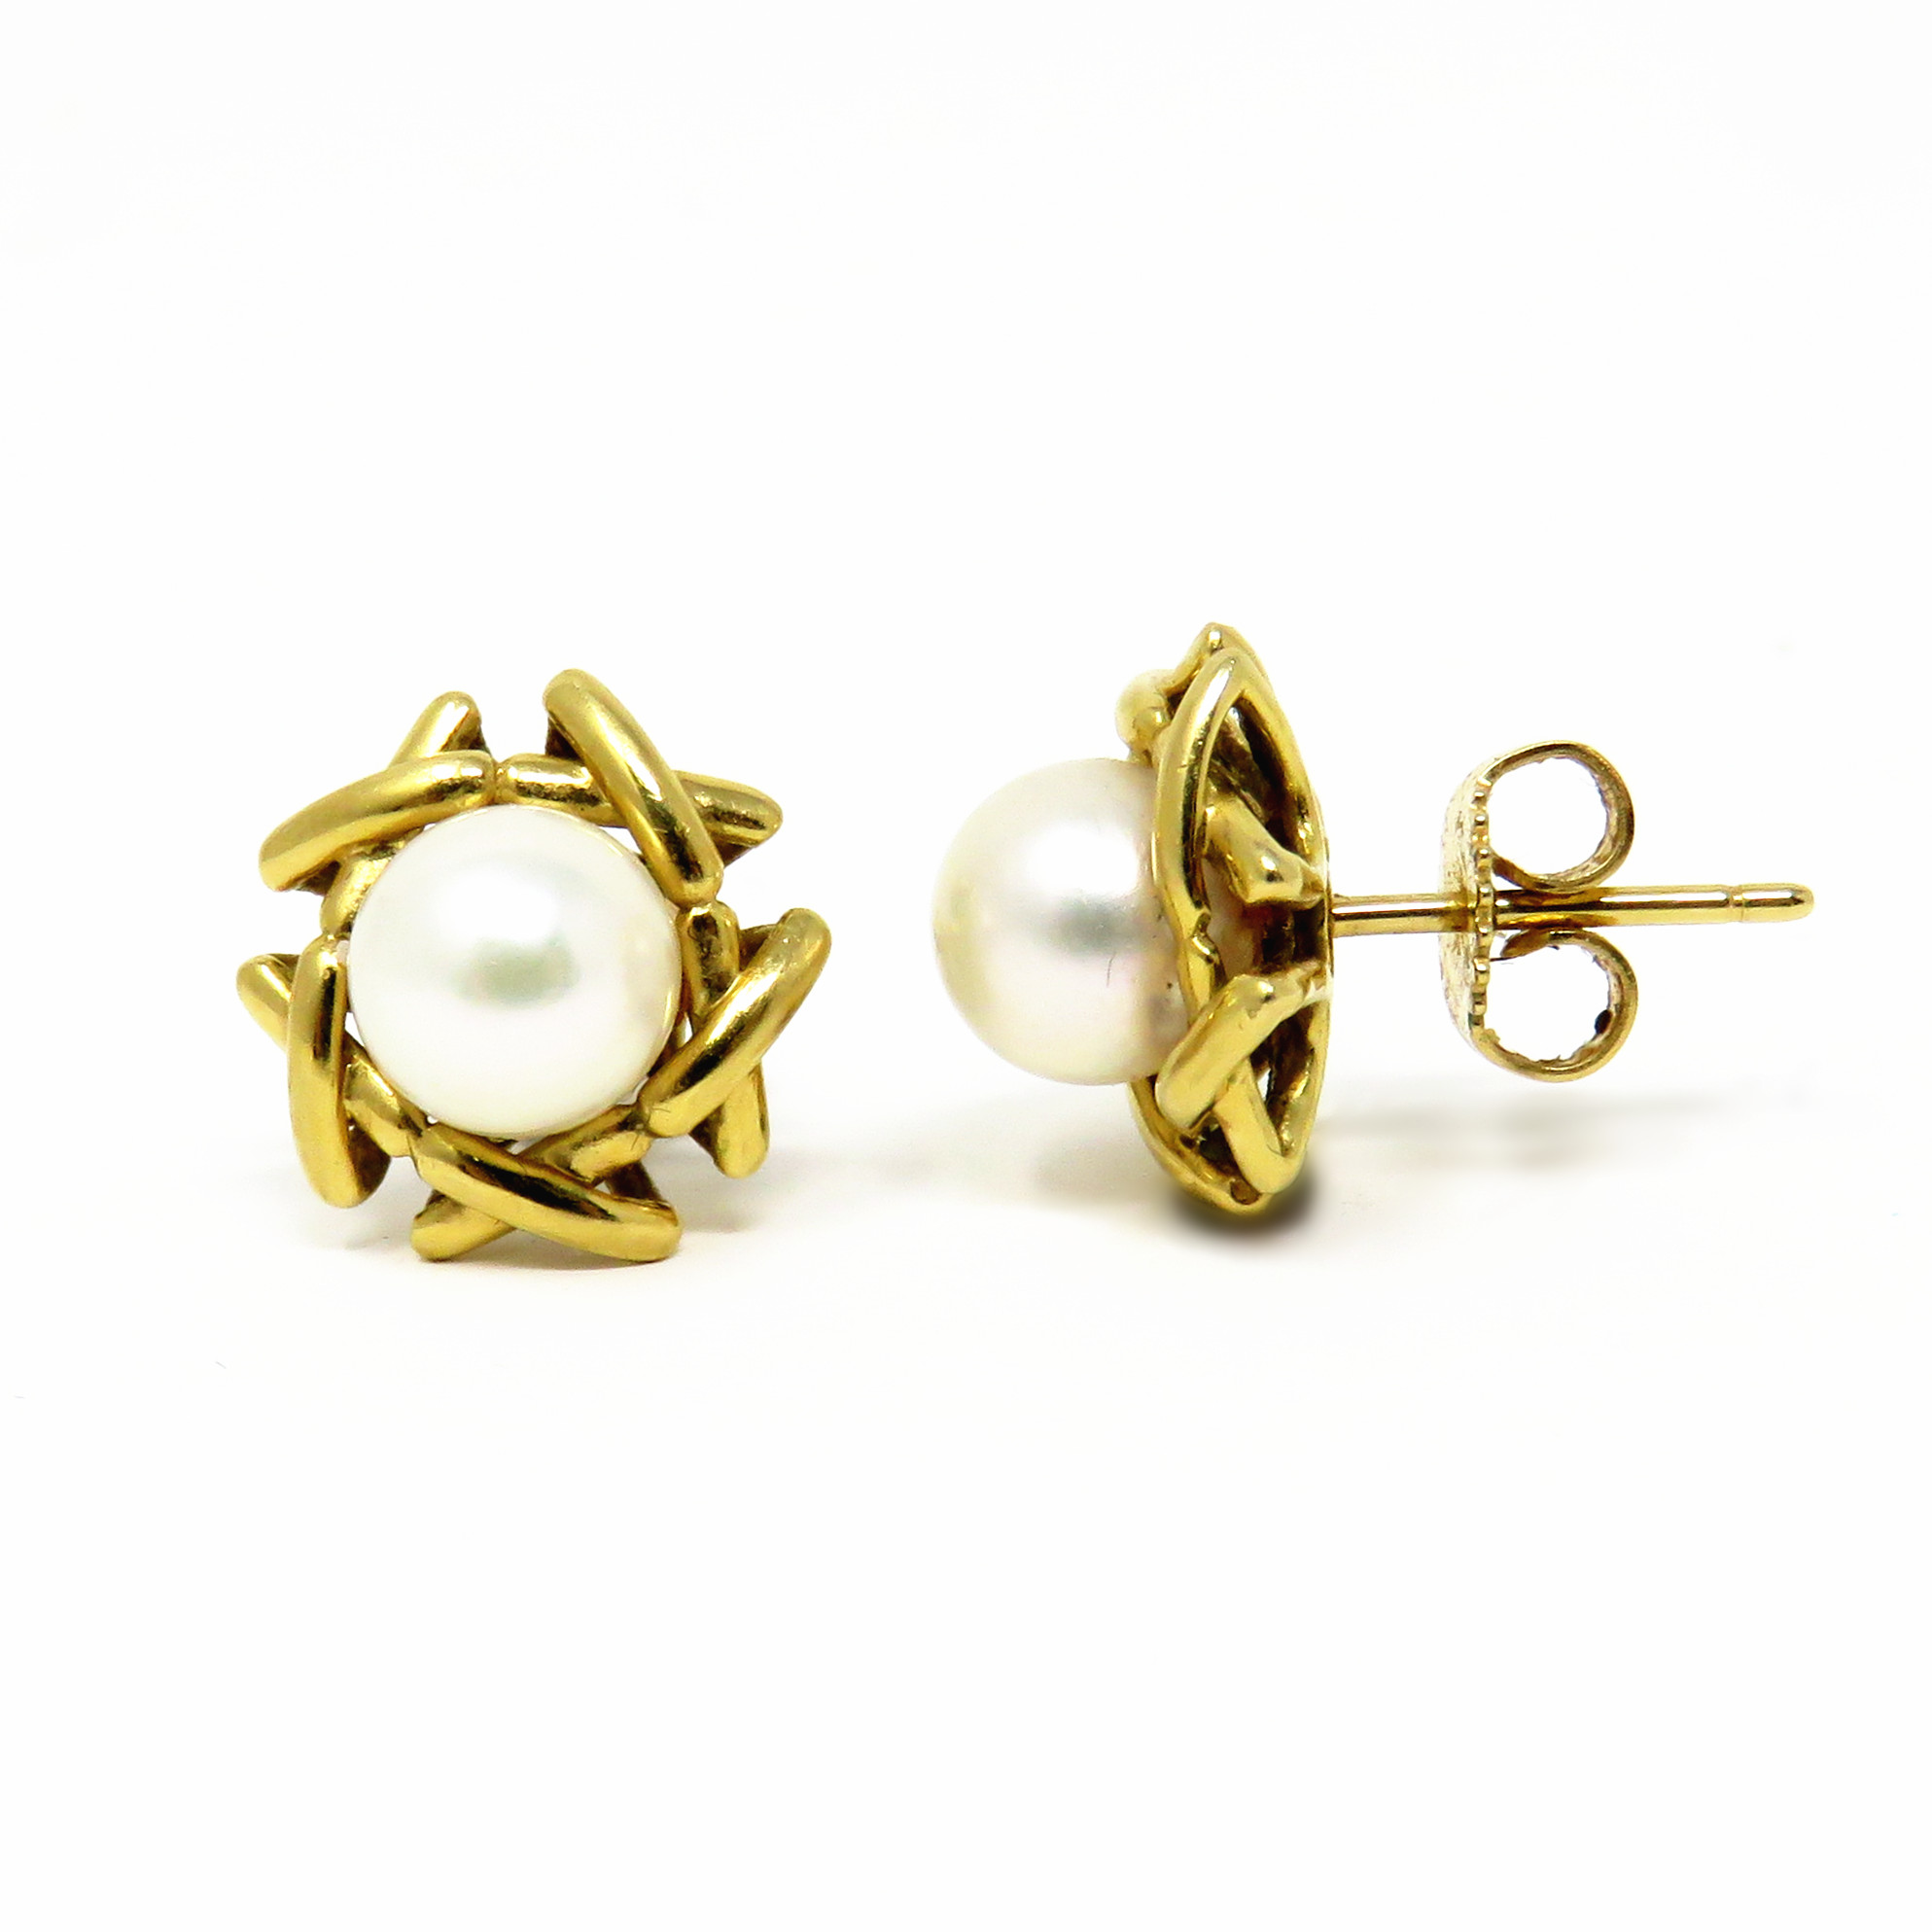 3c43aa5f73d032 Details about NYJEWEL TIFFANY & CO. 18K Yellow Gold 7mm Akoya Pearl  Signature X Stud Earrings